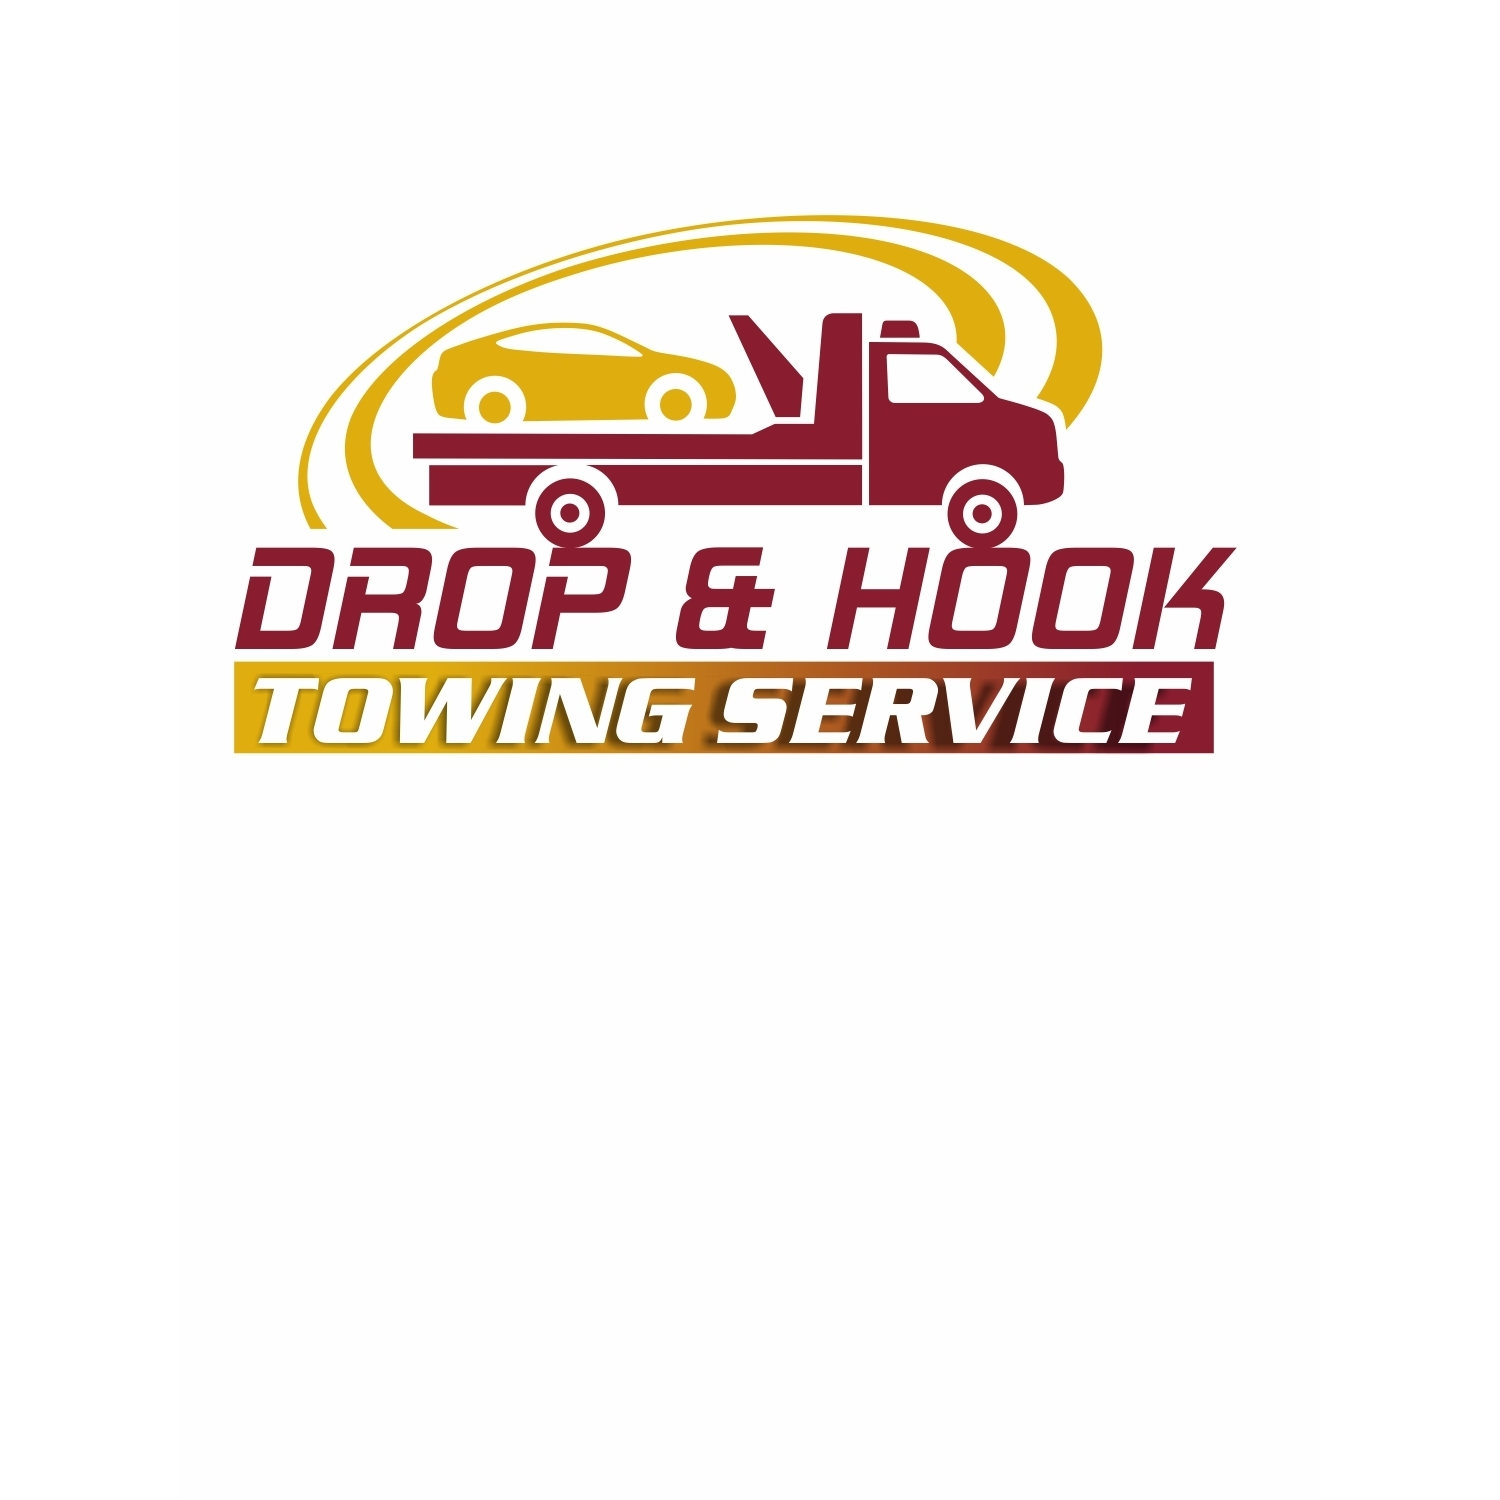 Drop & Hook Towing